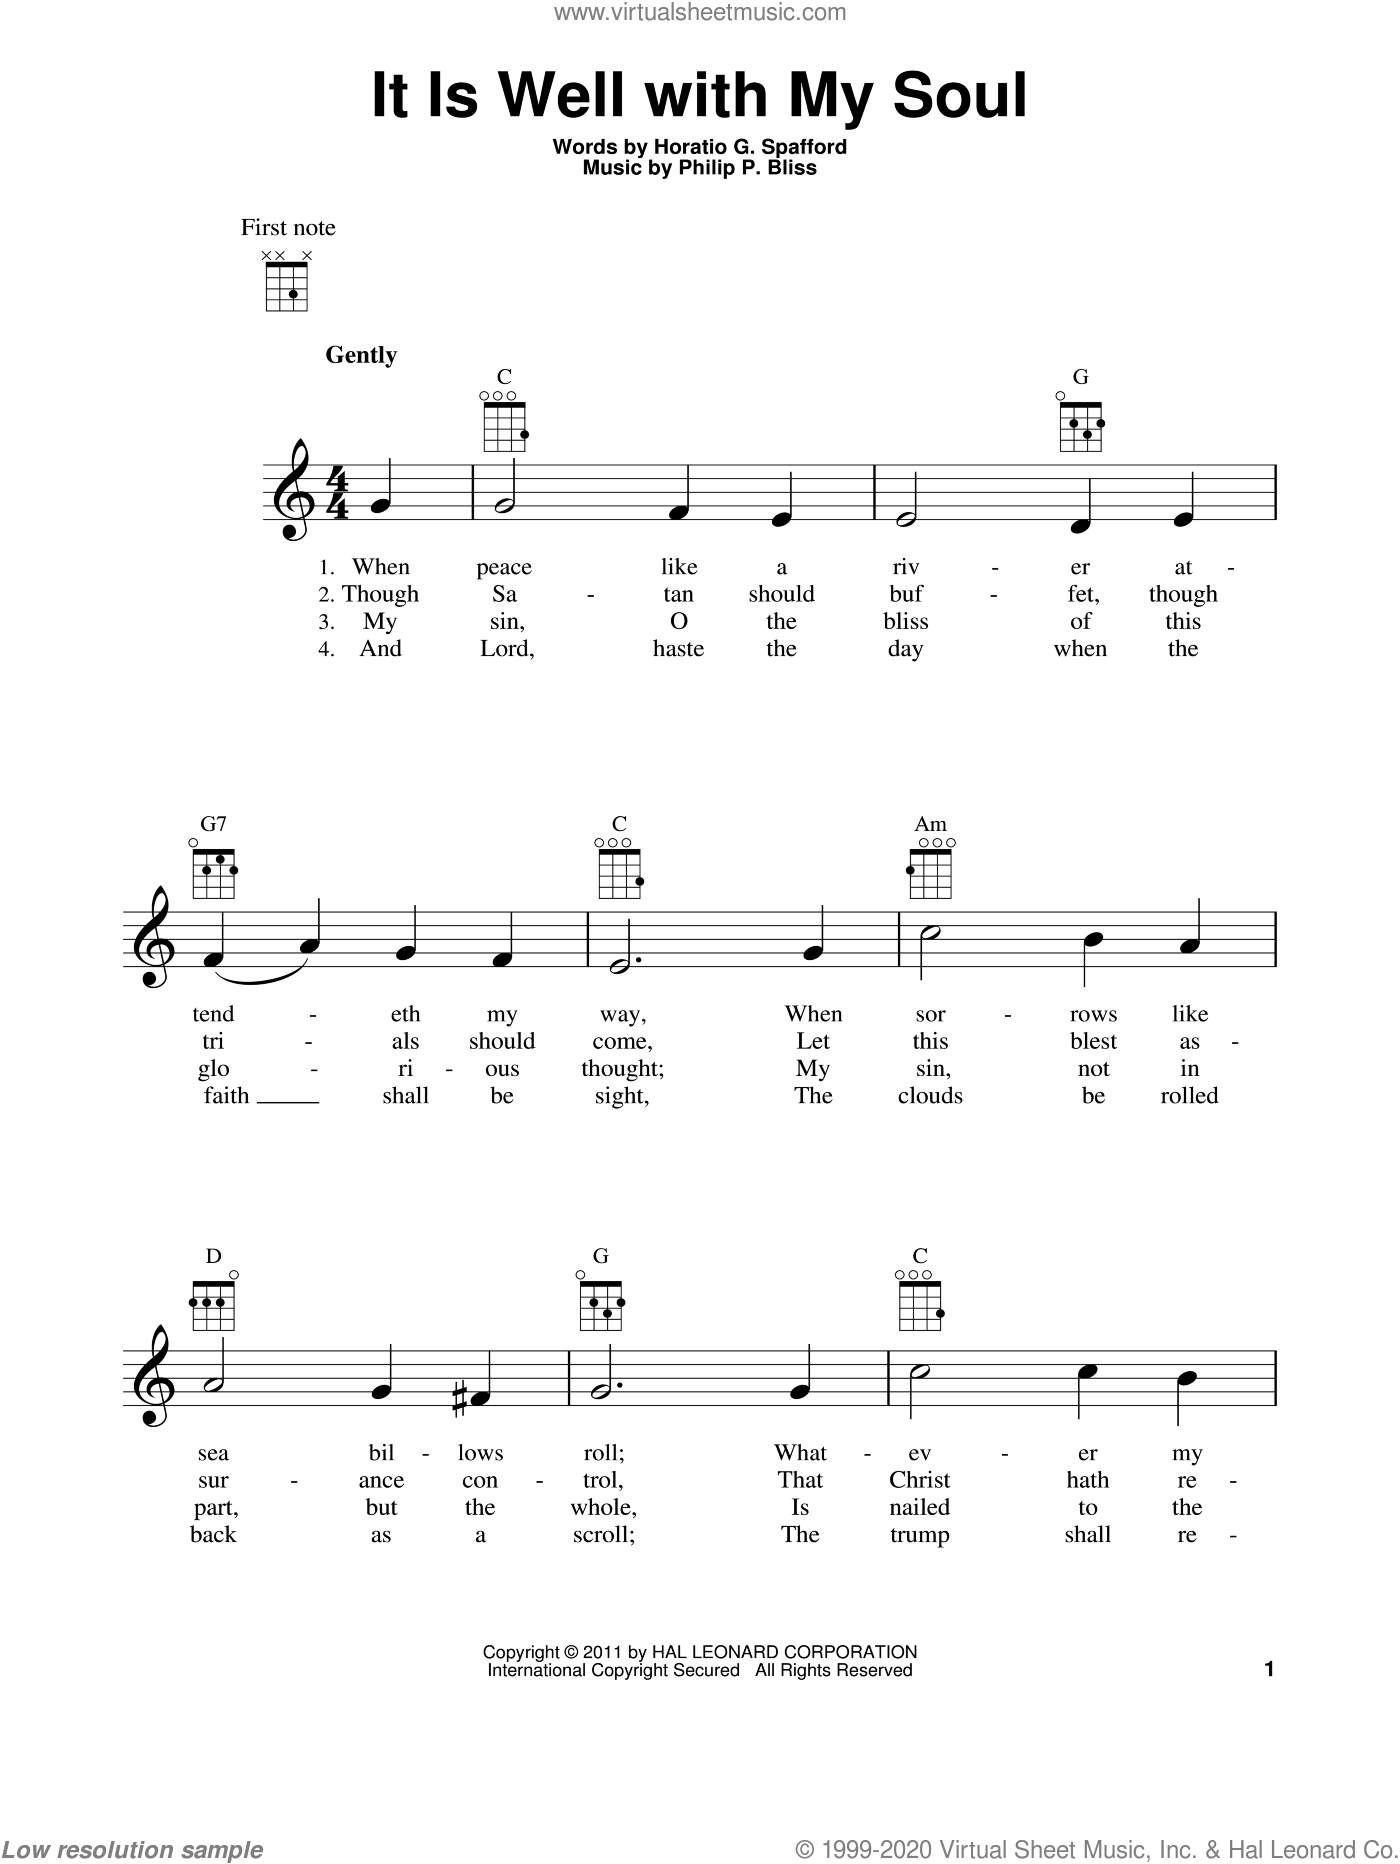 It Is Well With My Soul sheet music for ukulele by Philip P. Bliss and Horatio G. Spafford, intermediate